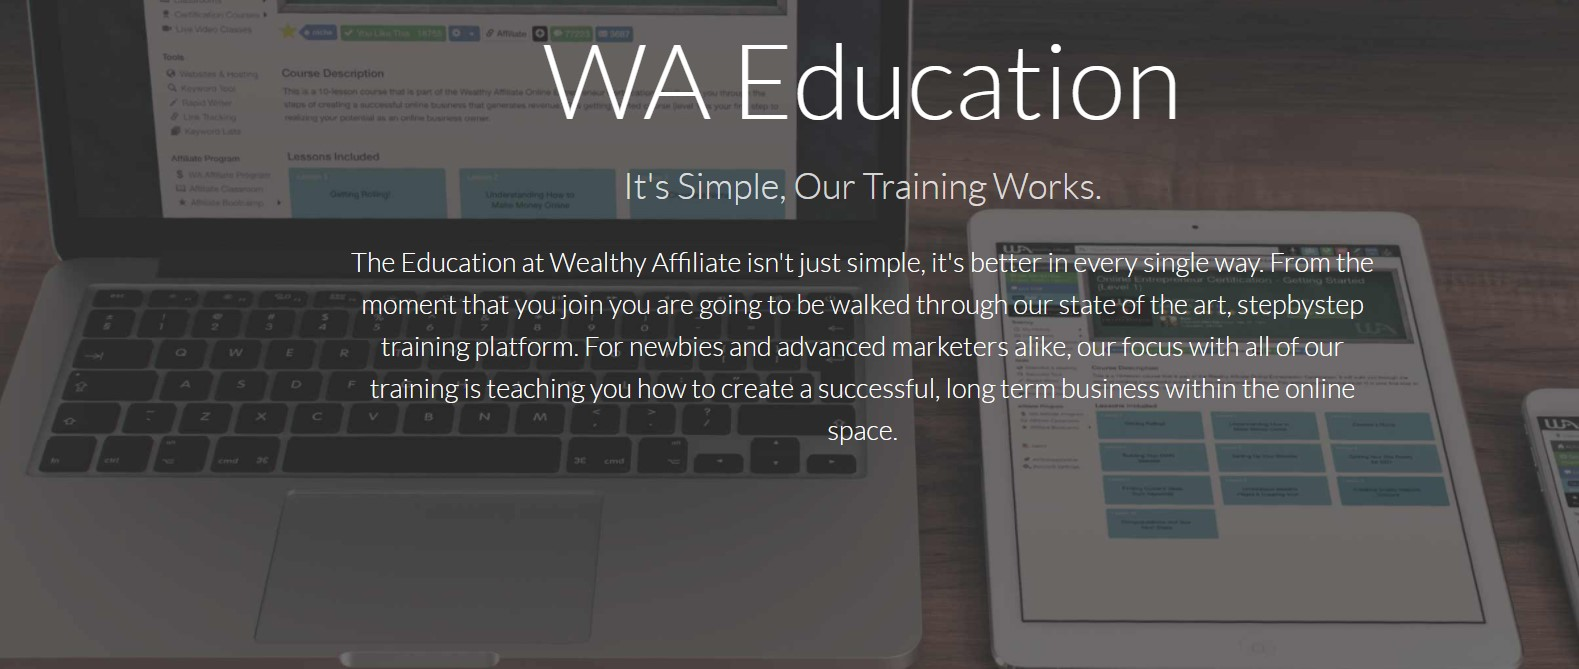 wealthy-affiliate-training-statement